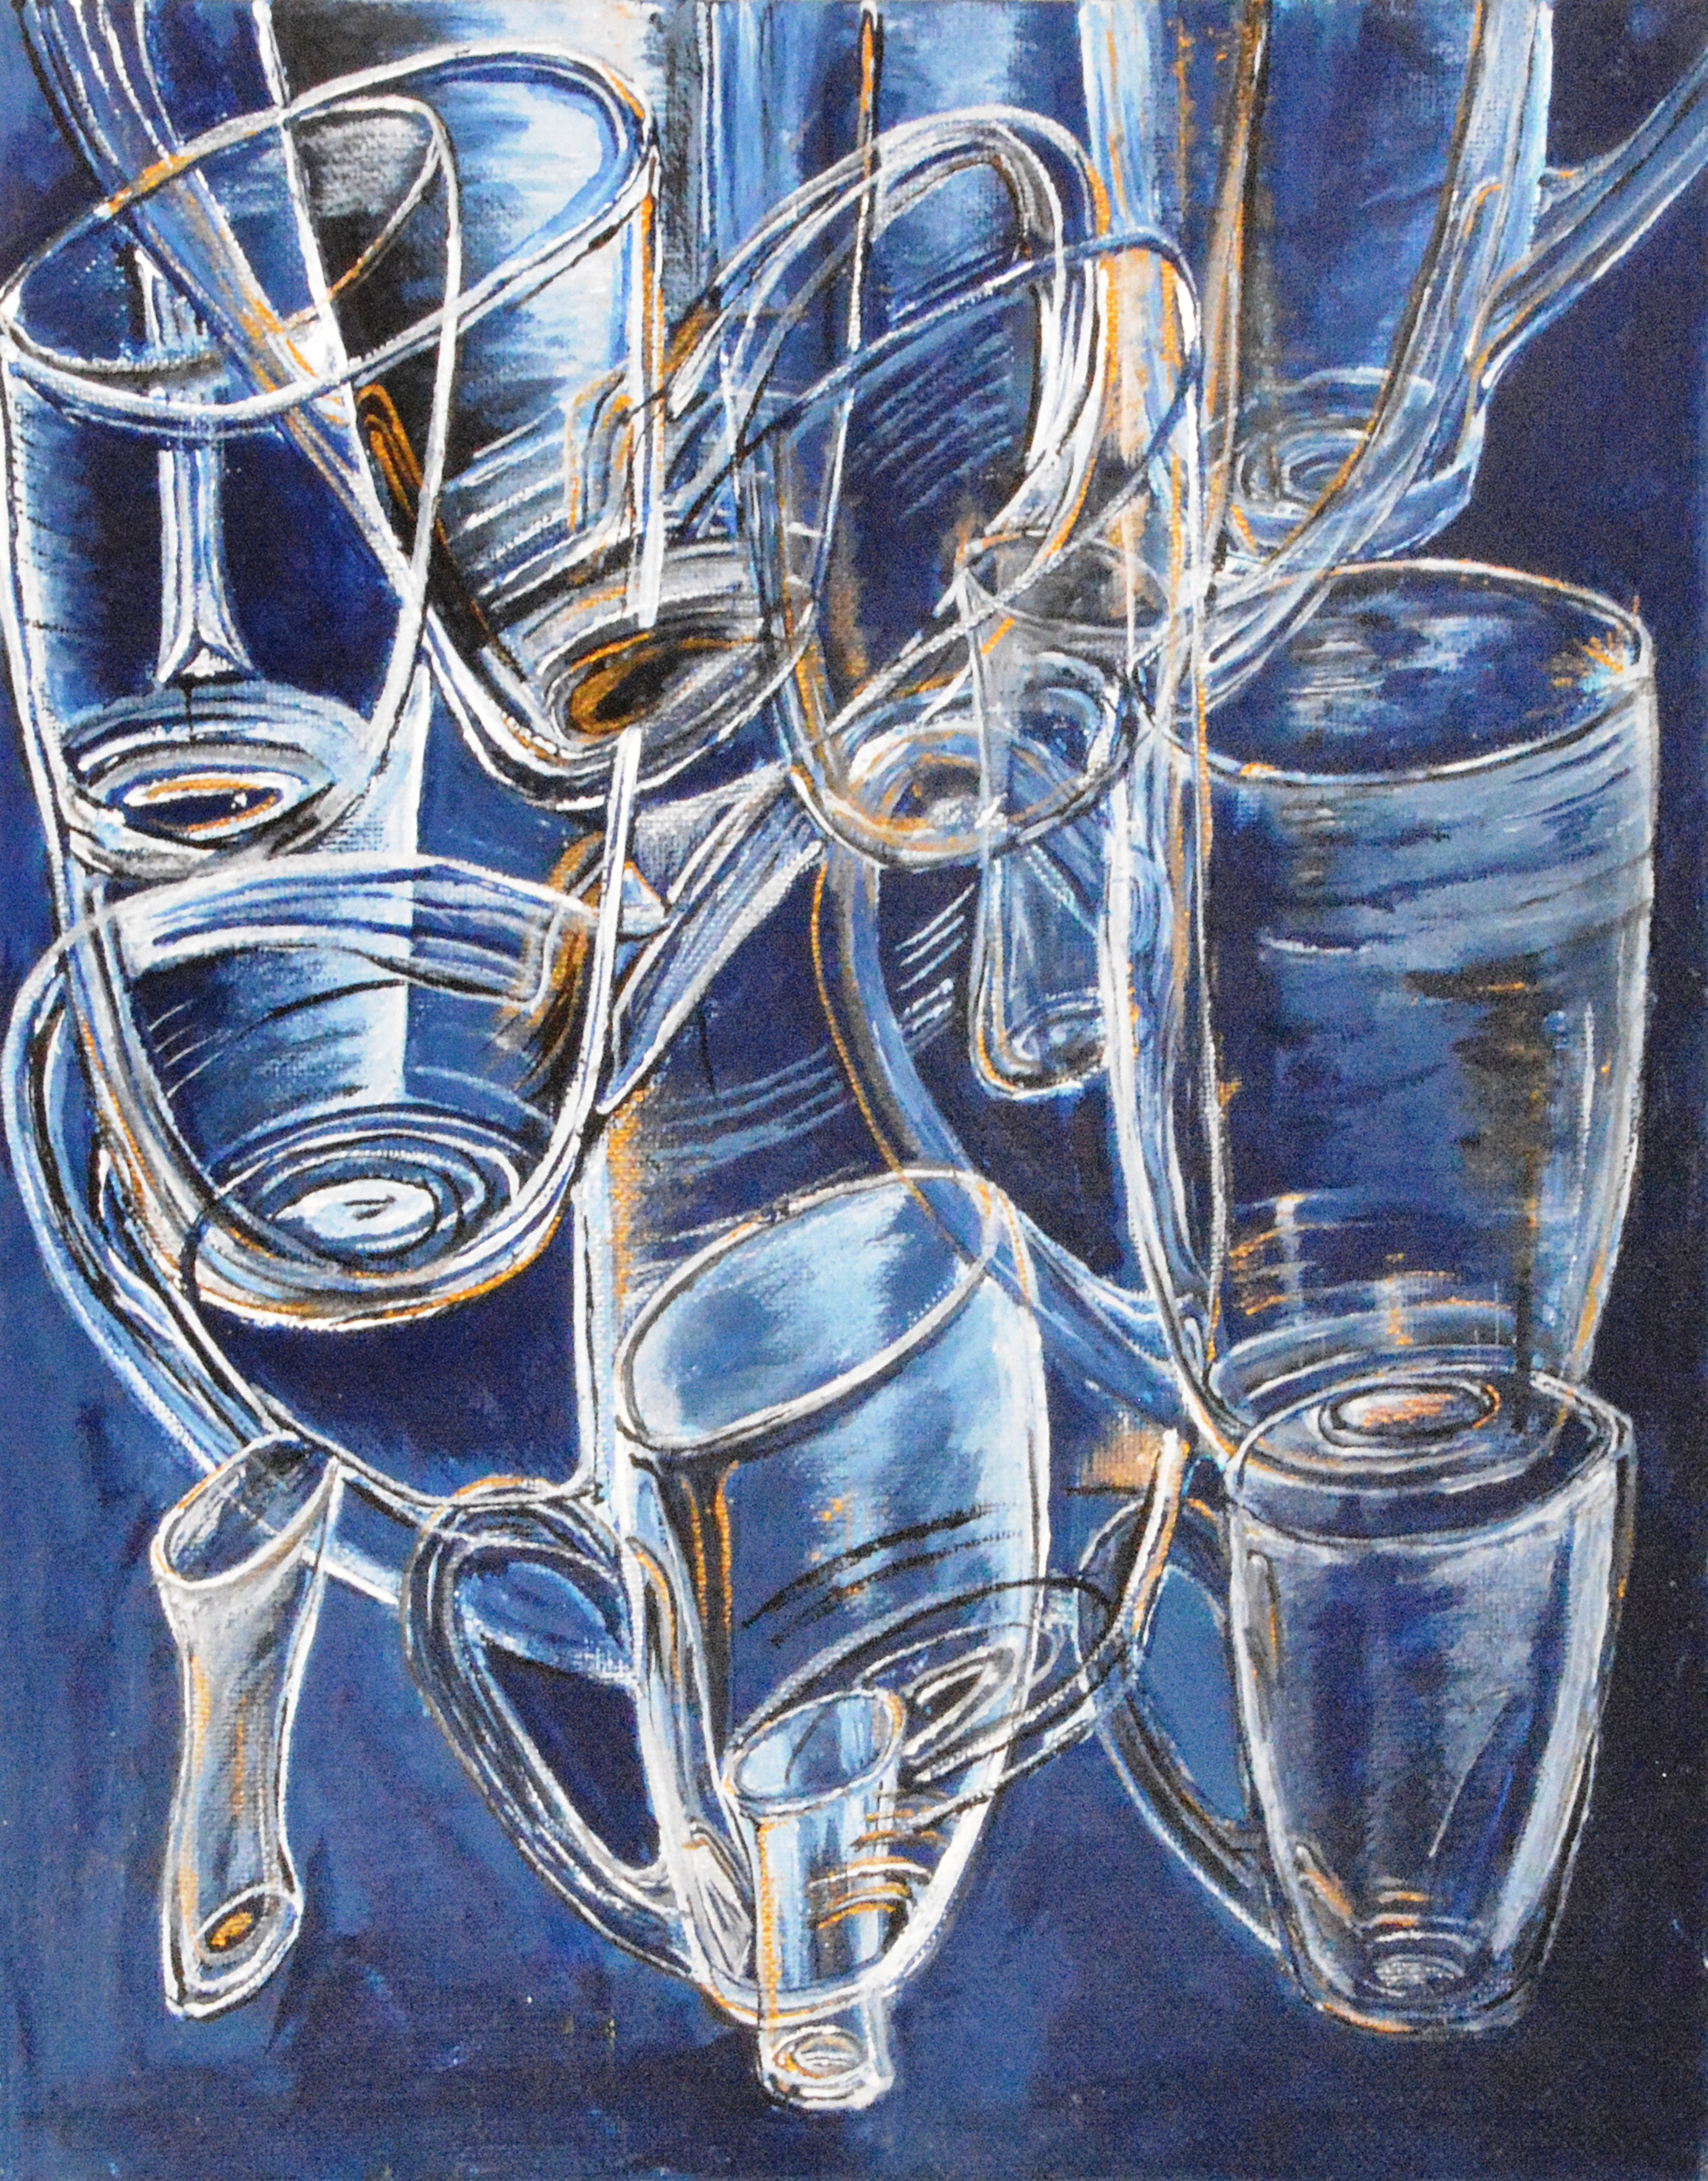 Medea Ioseliani; Glasses In Blue, 2017, Original Painting Acrylic, 30 x 50 cm. Artwork description: 241 The picture creates the party mood at home ...